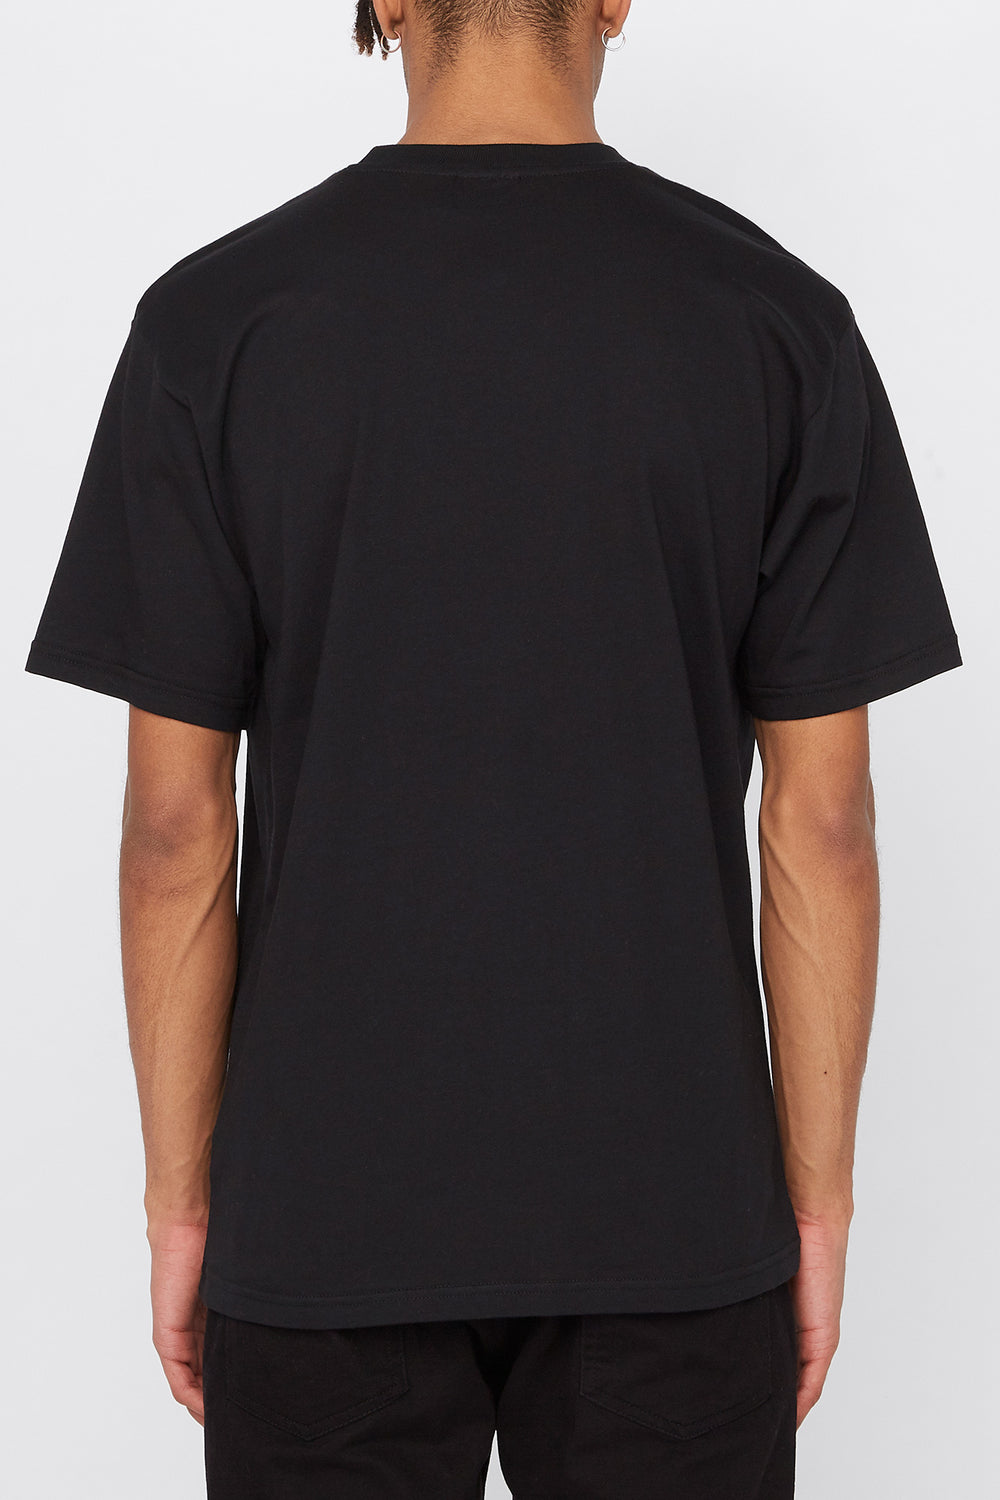 Adidas Mens Hand Drip T-Shirt Black